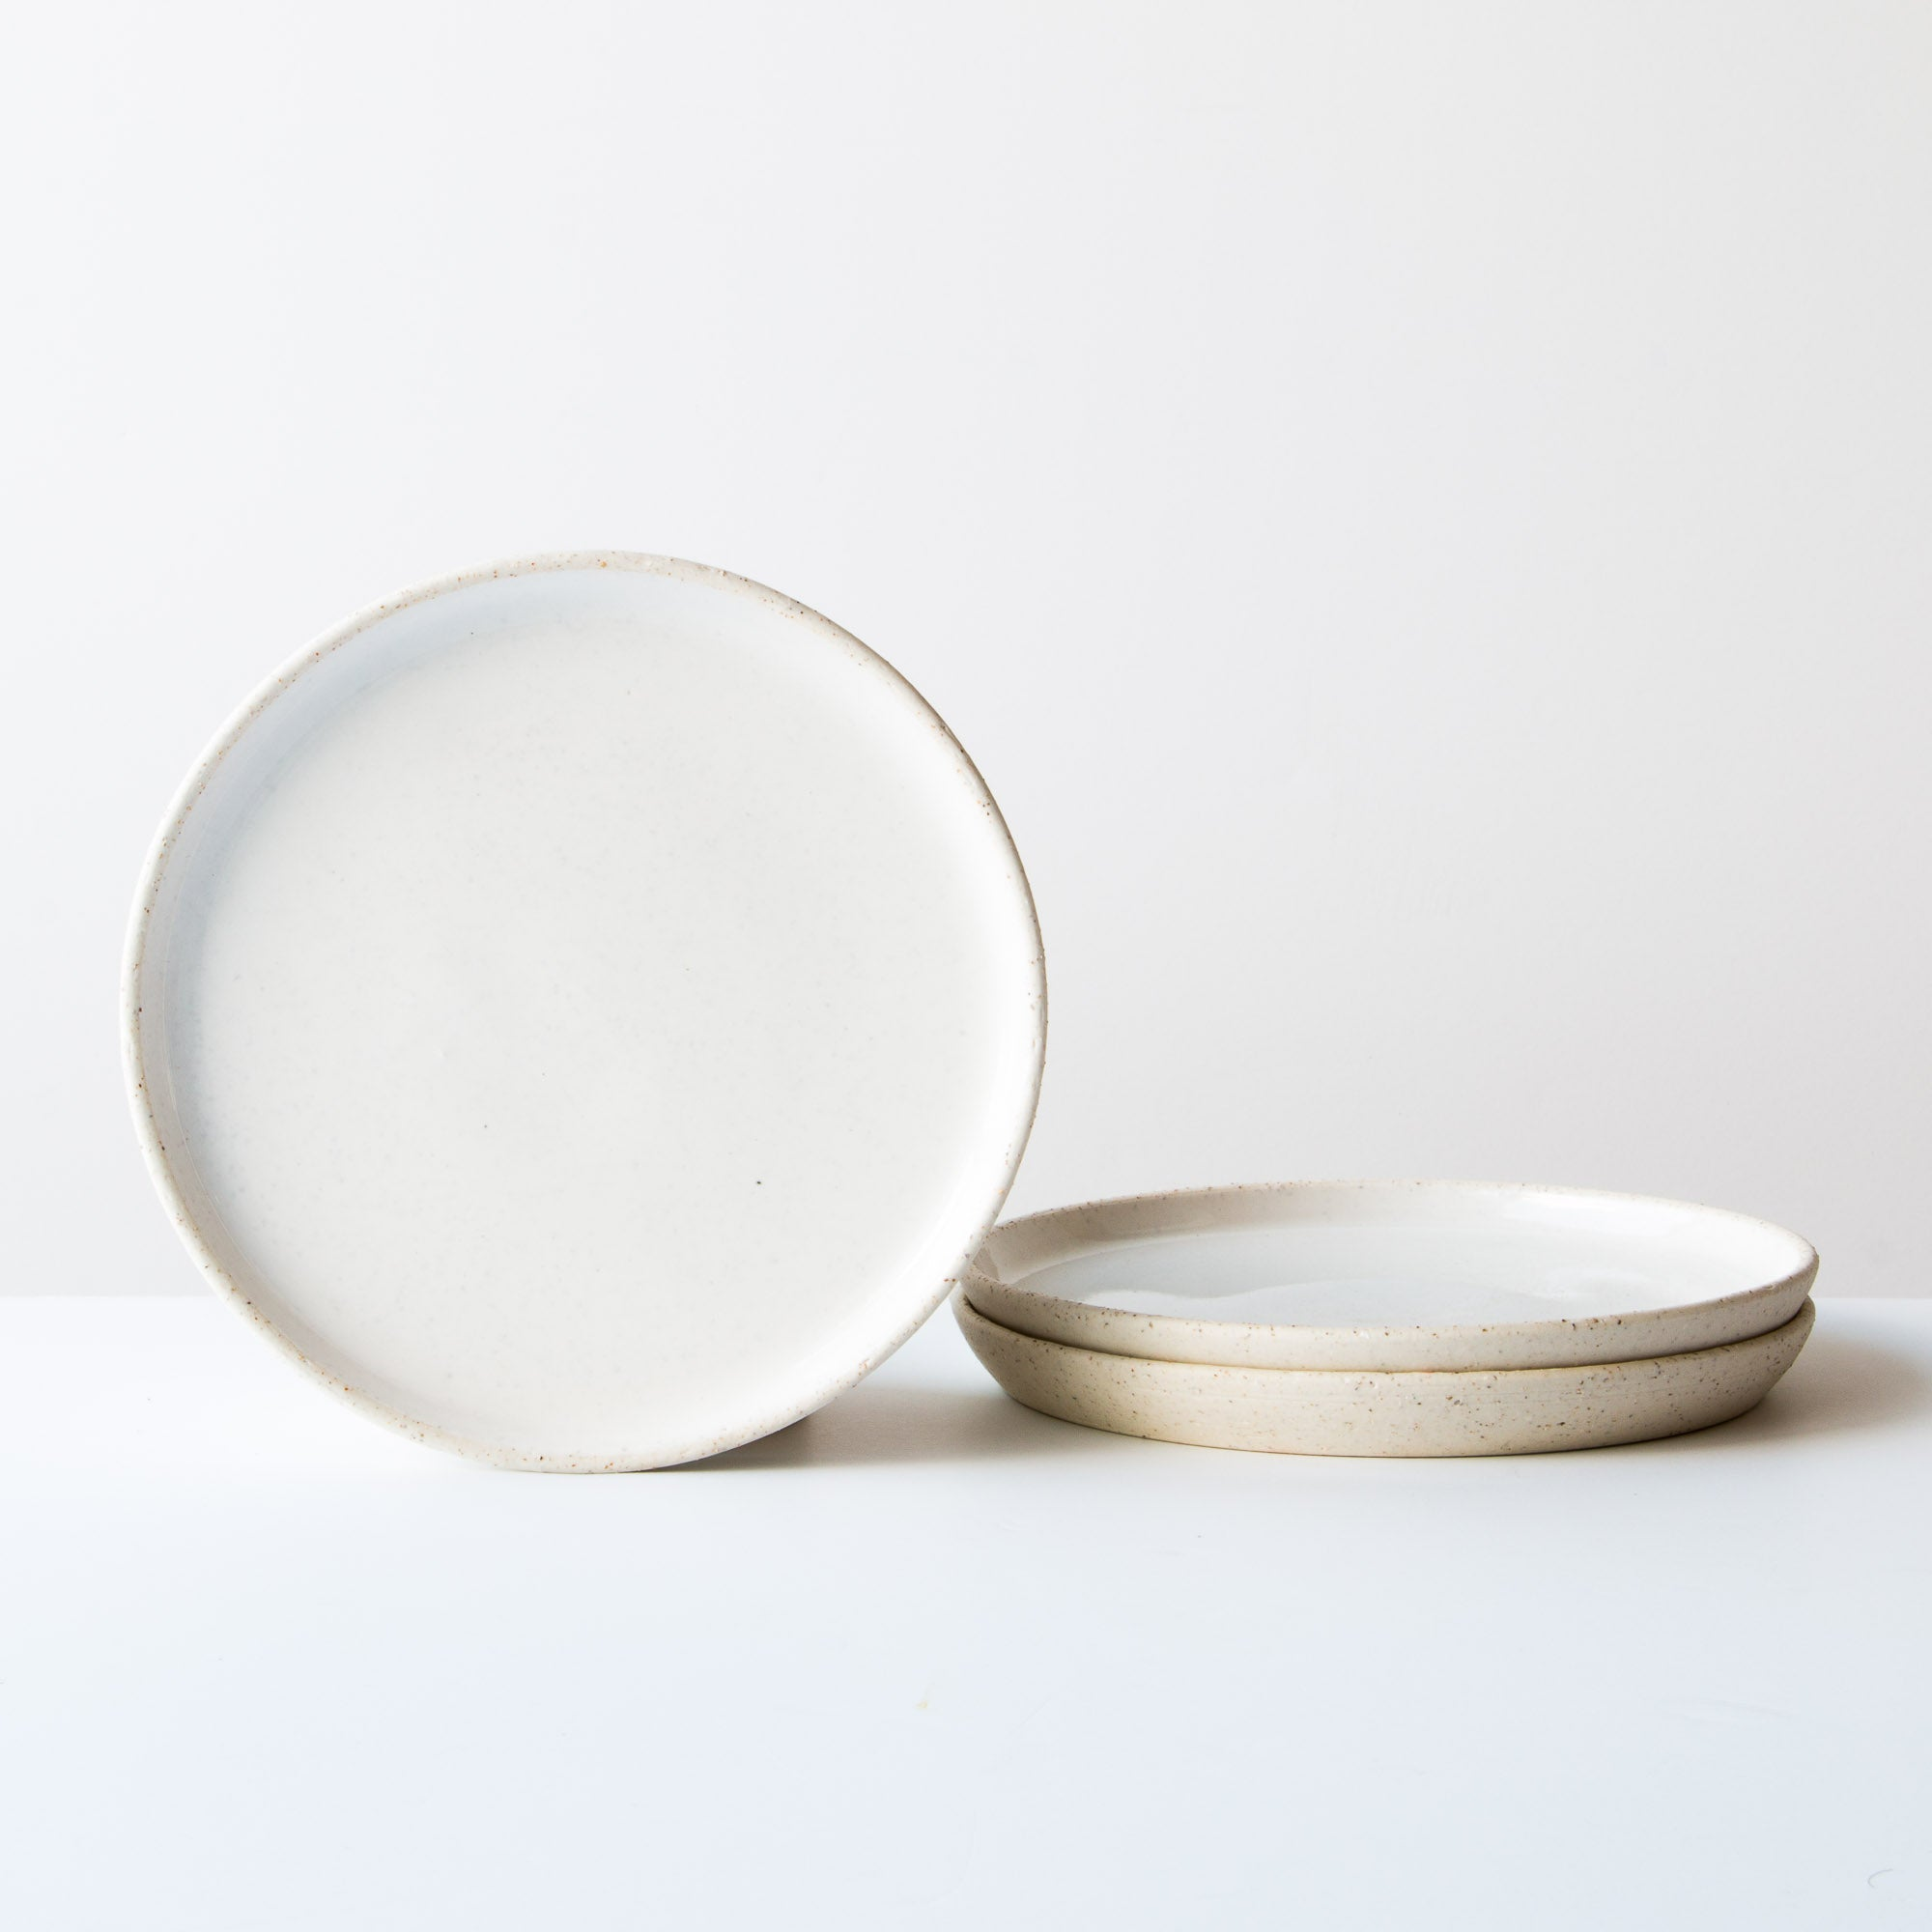 ... Oatmeal Clay - Soft White Glaze - Small Ceramic Plate - Handmade in Quebec Canada ... & Small Ceramic Plate - Handmade Ceramic Dinnerware - Chic u0026 Basta